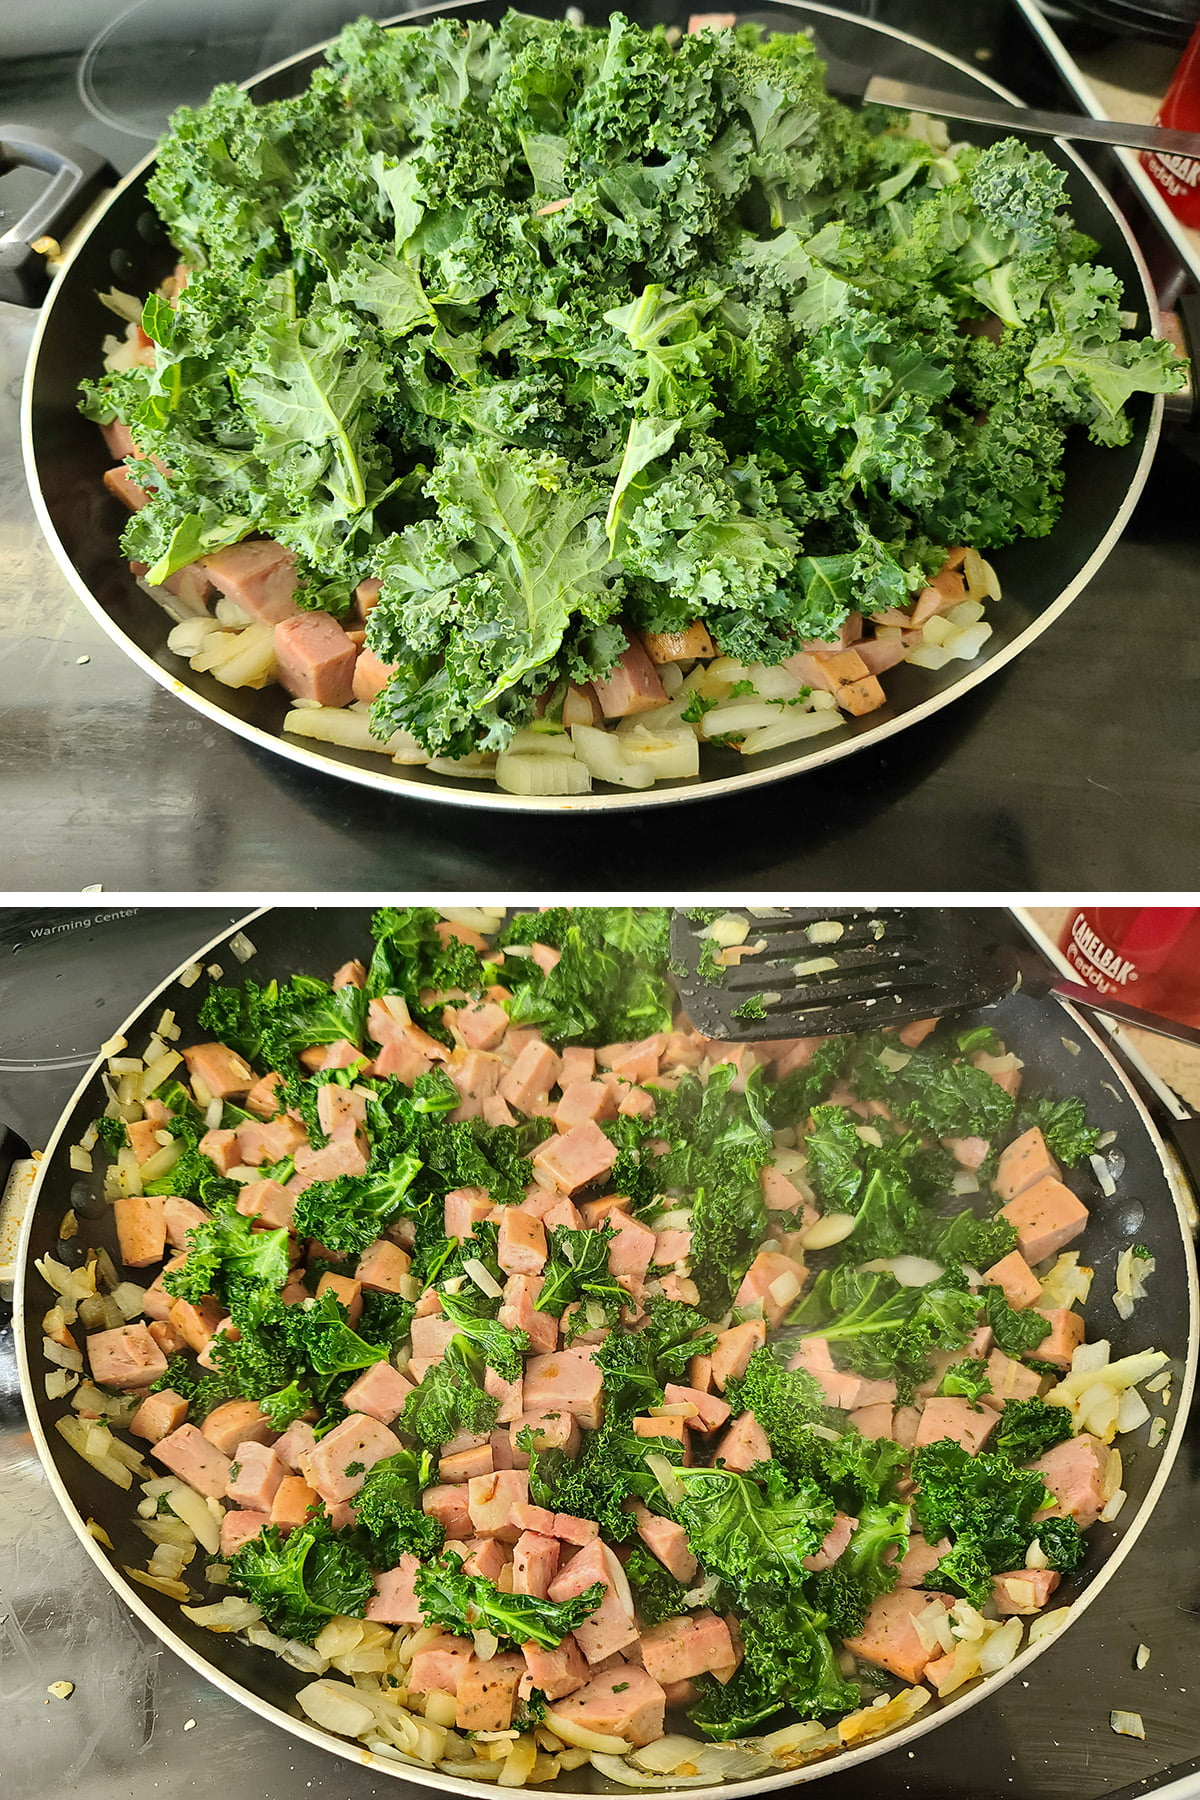 A two part compilation image showing a large pile of kale being added to a pan, and that piled cooked down.